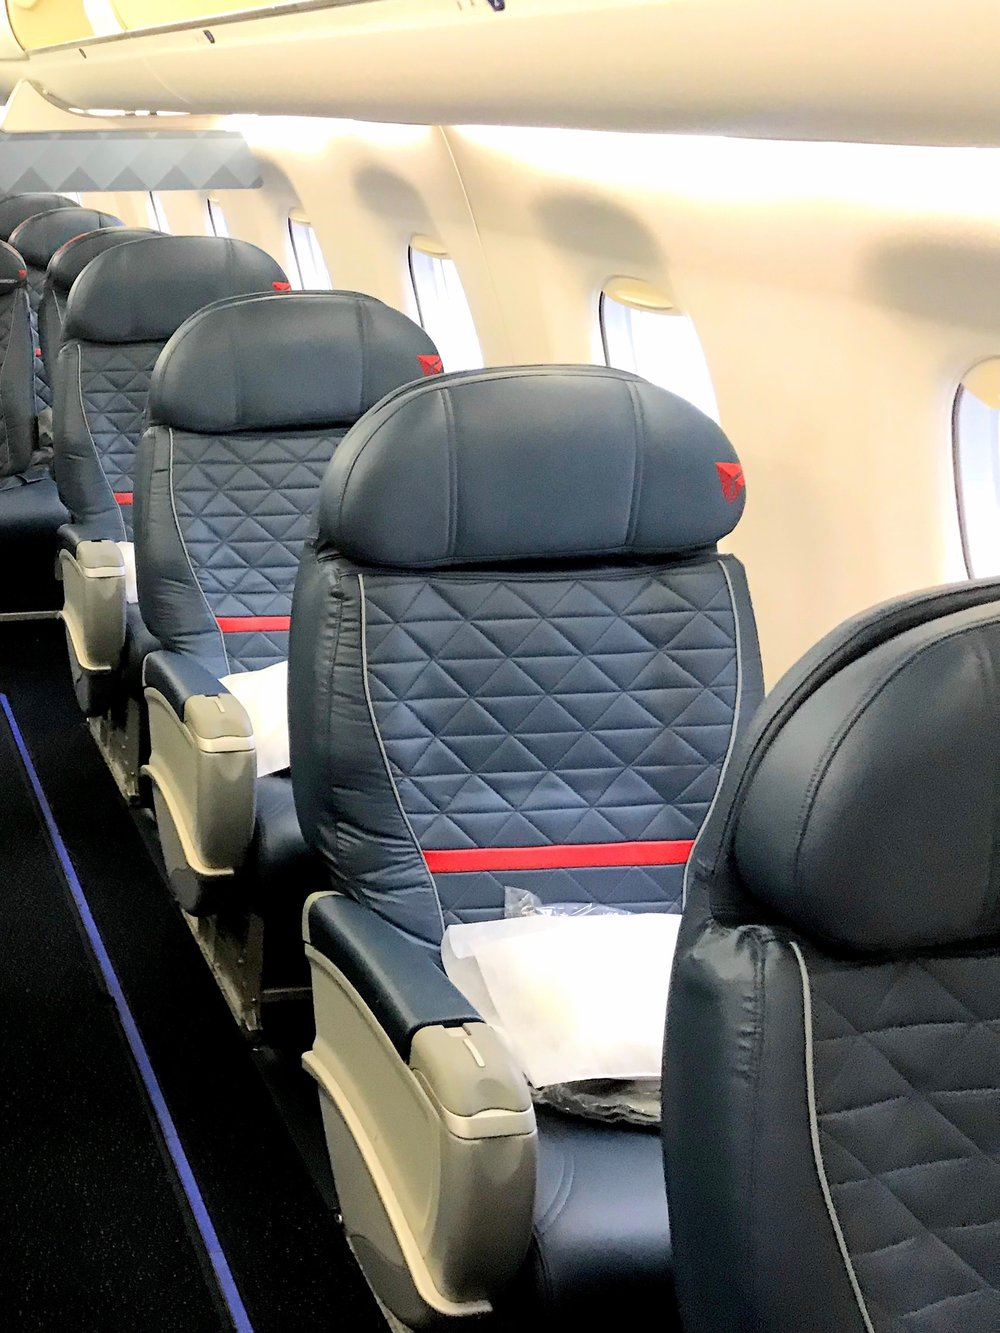 Seat 3A is 1 of 4 single seats in the First Class cabin